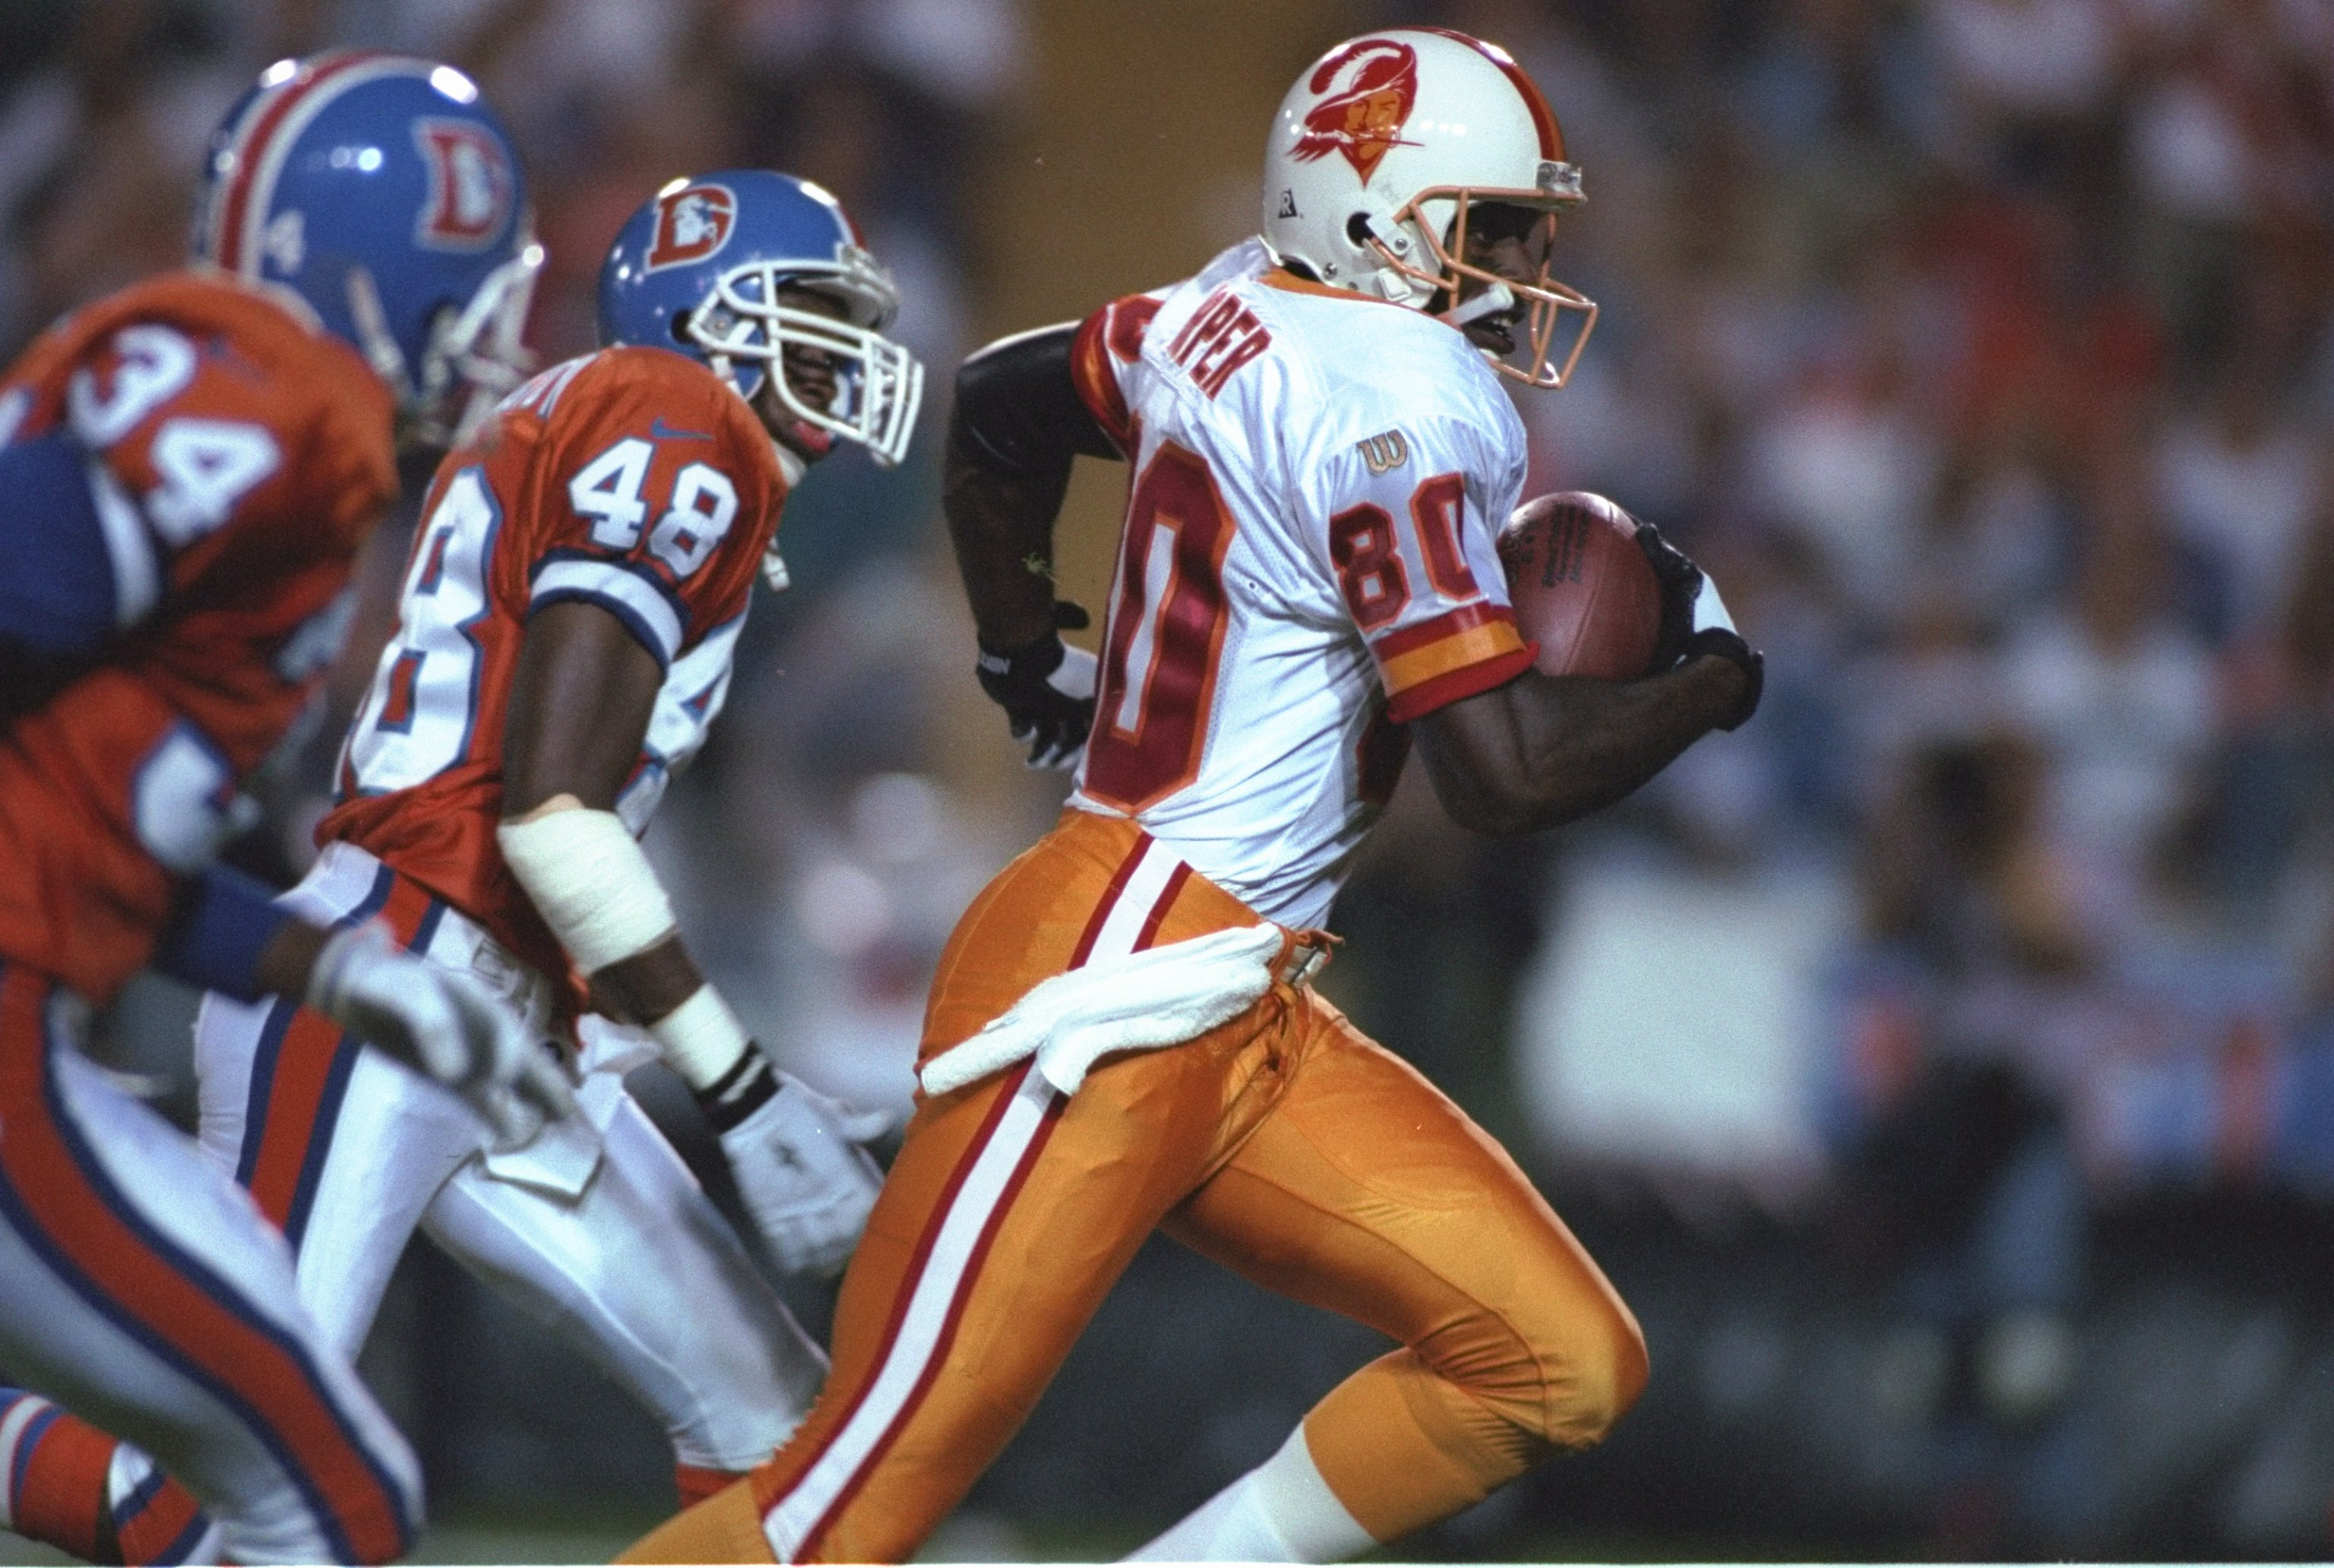 15 Sep 1996: Wide receiver Alvin Harper #80 of the Tampa Bay Buccaneers looks up field as he runs with the football while being pursued by defensive backs Lionel Washington #48 and Tyrone Braxton #34 of the Denver Broncos following a down field reception